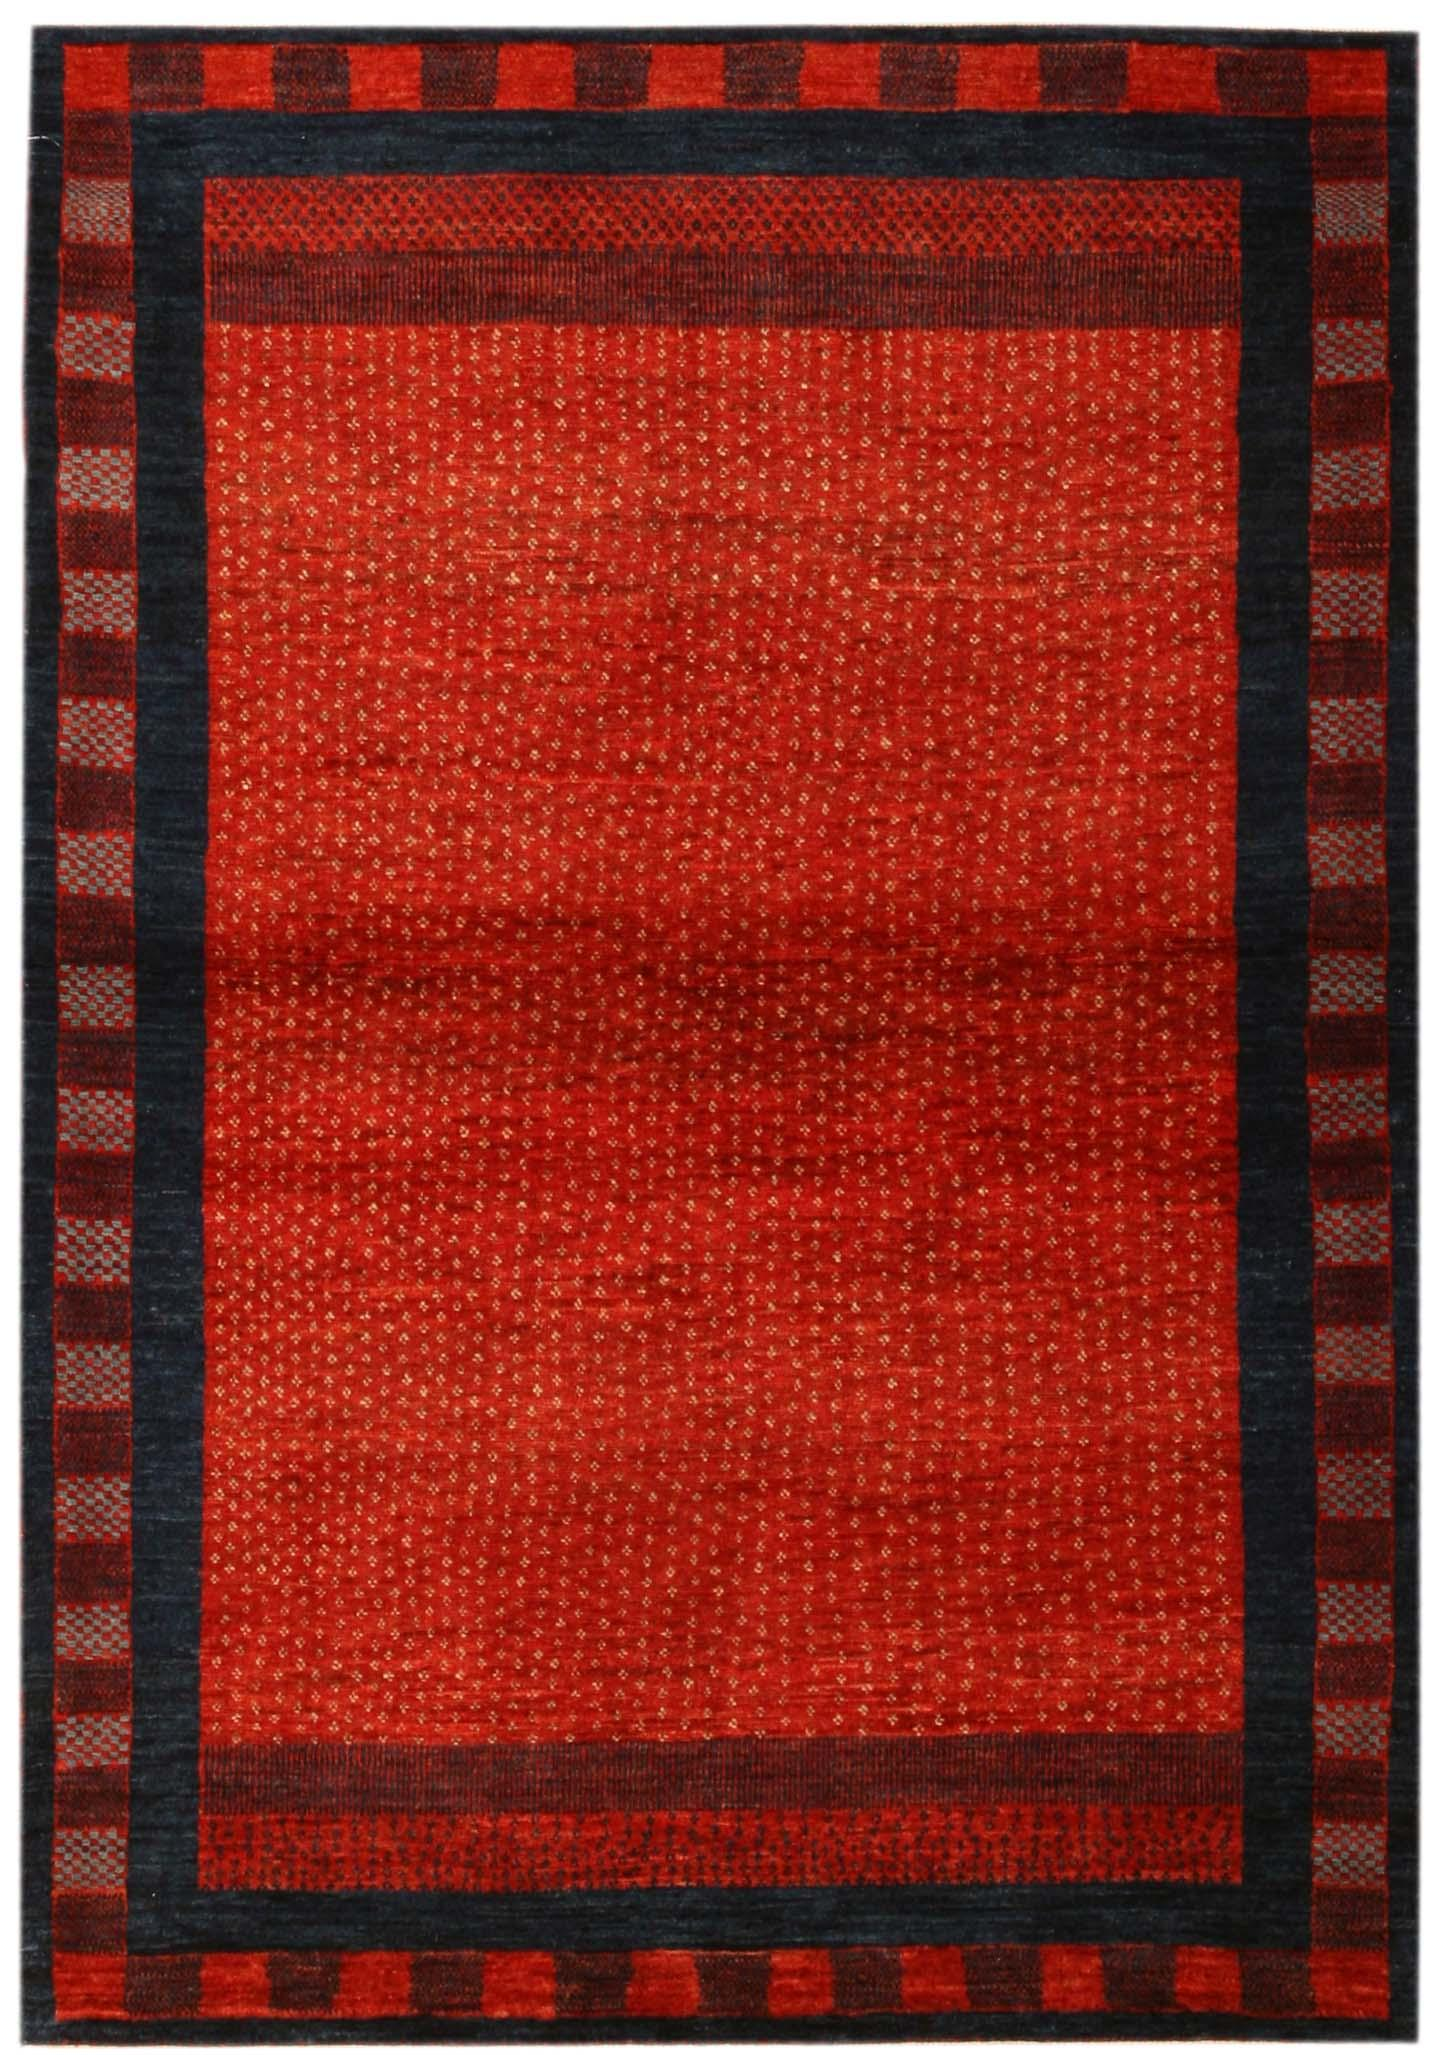 Gabbeh Design Persian Rug / Carpet 15641. Loading Zoom